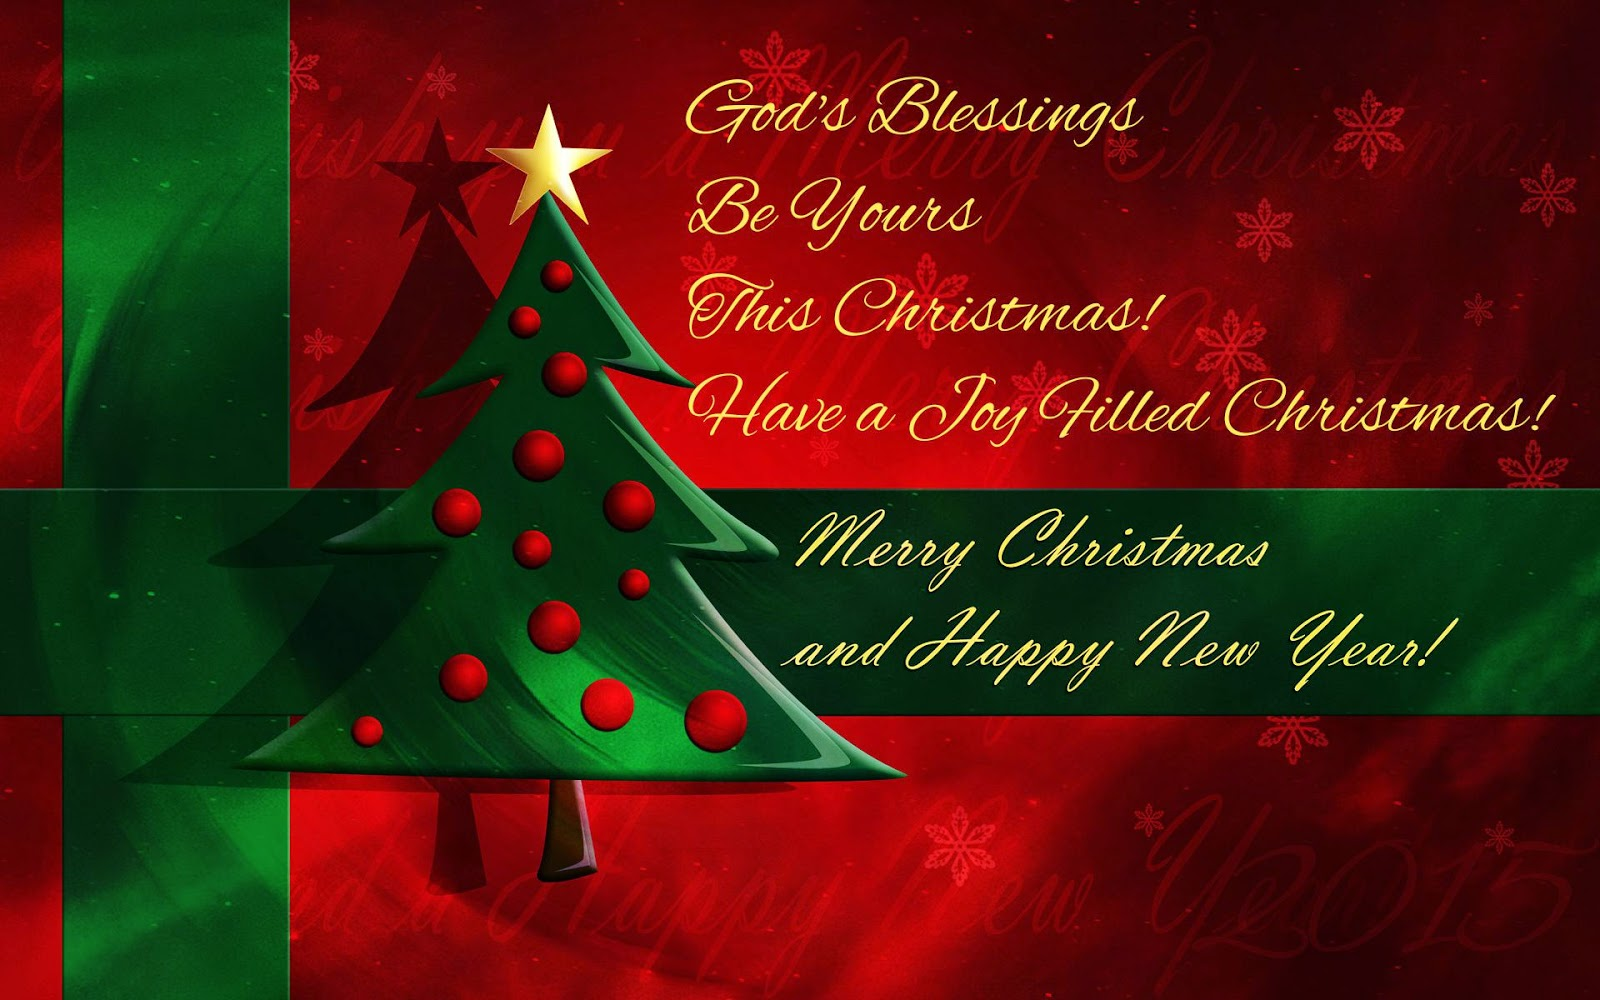 merry christmas and happy new year quotes wishes for cards